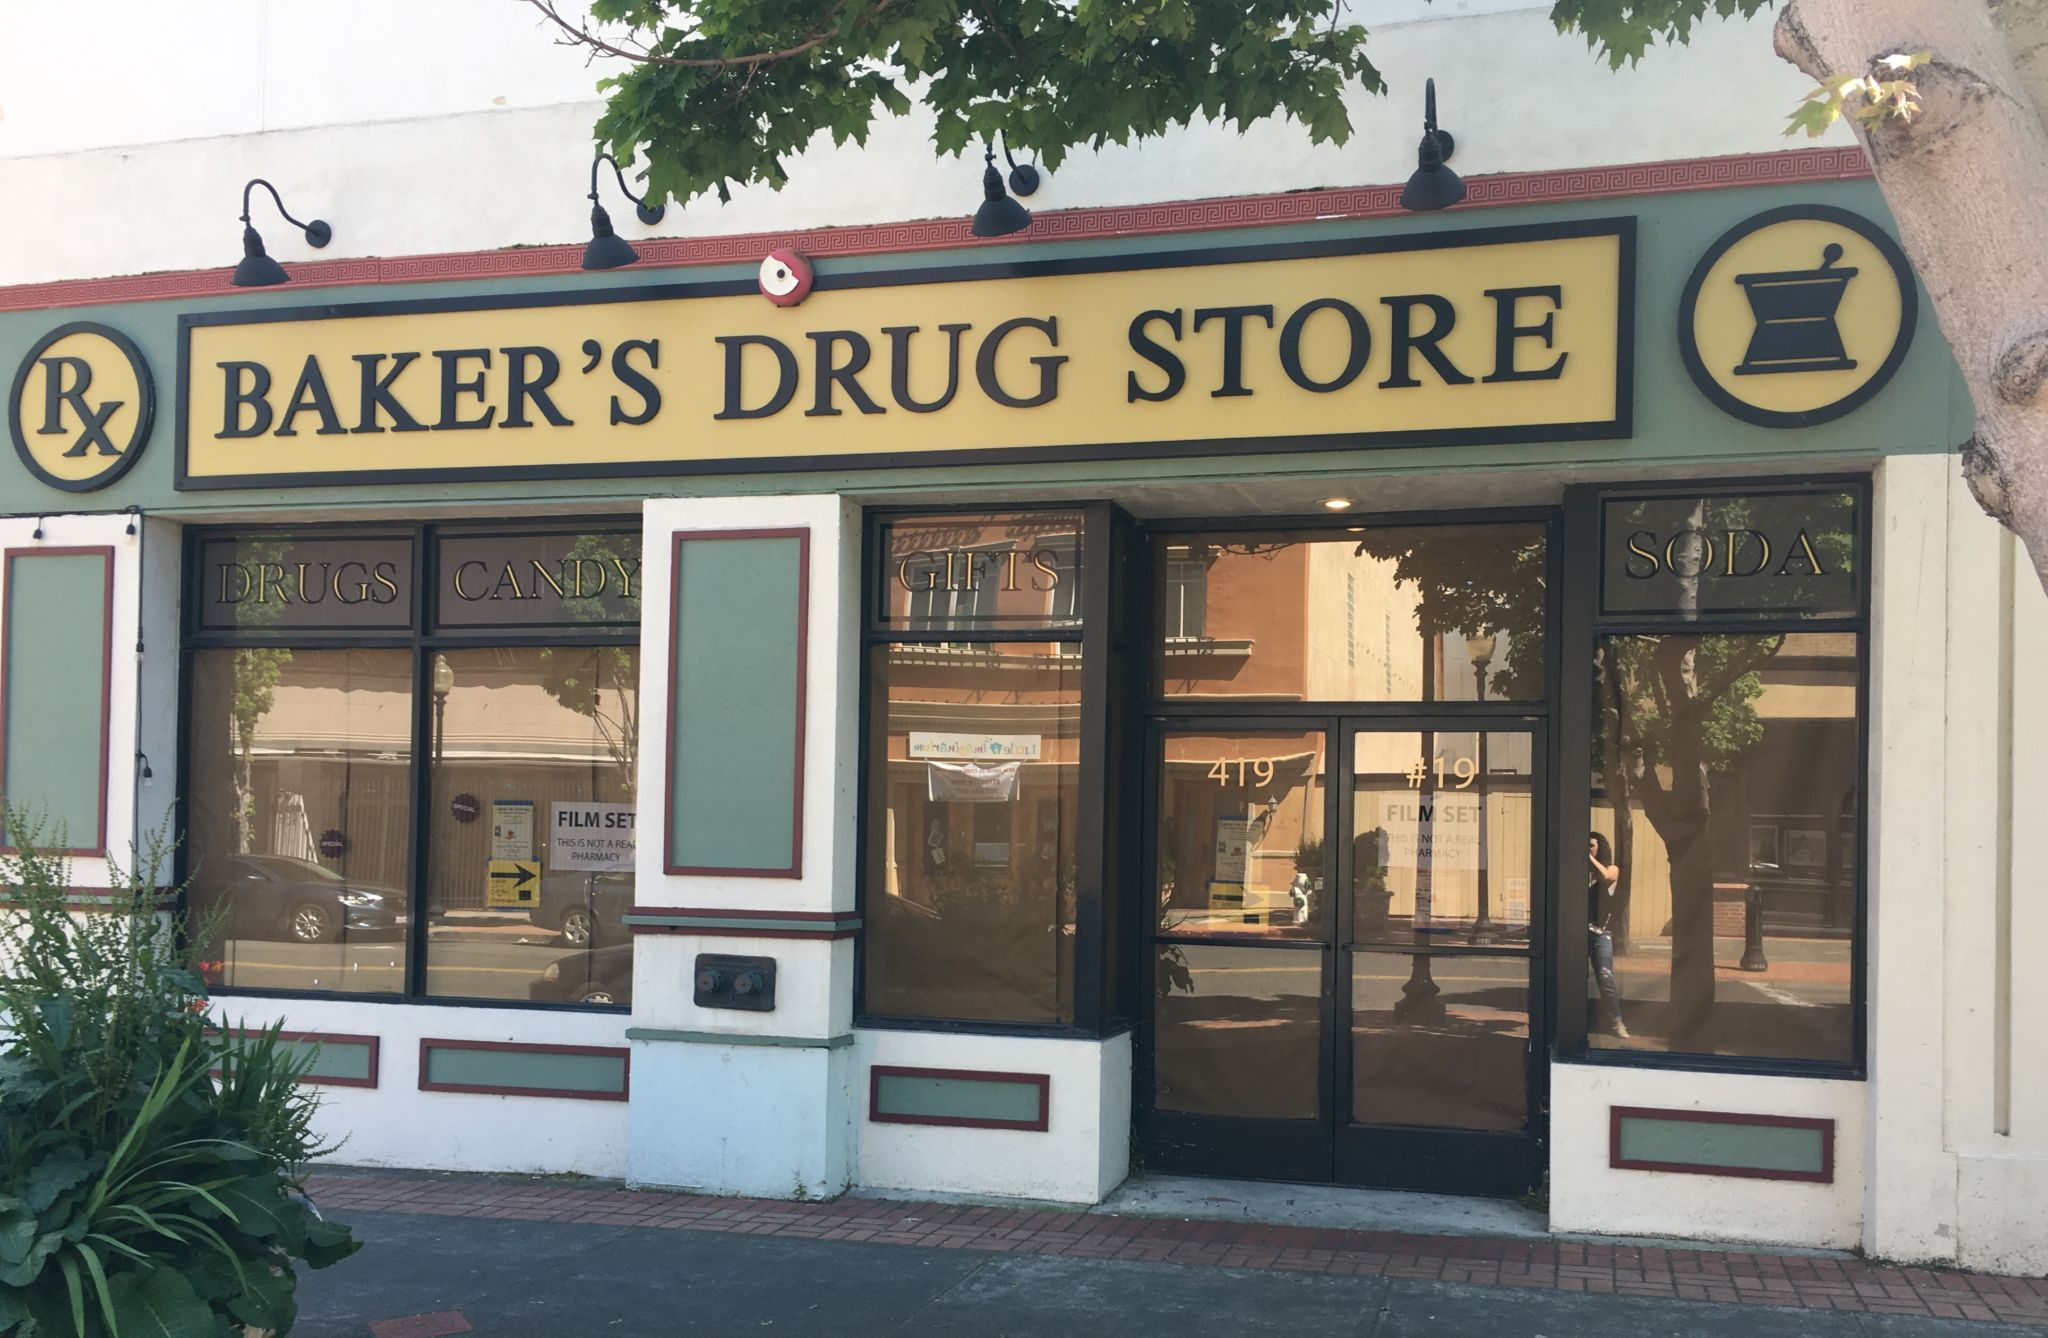 Baker's drug store in 13 Reasons Why